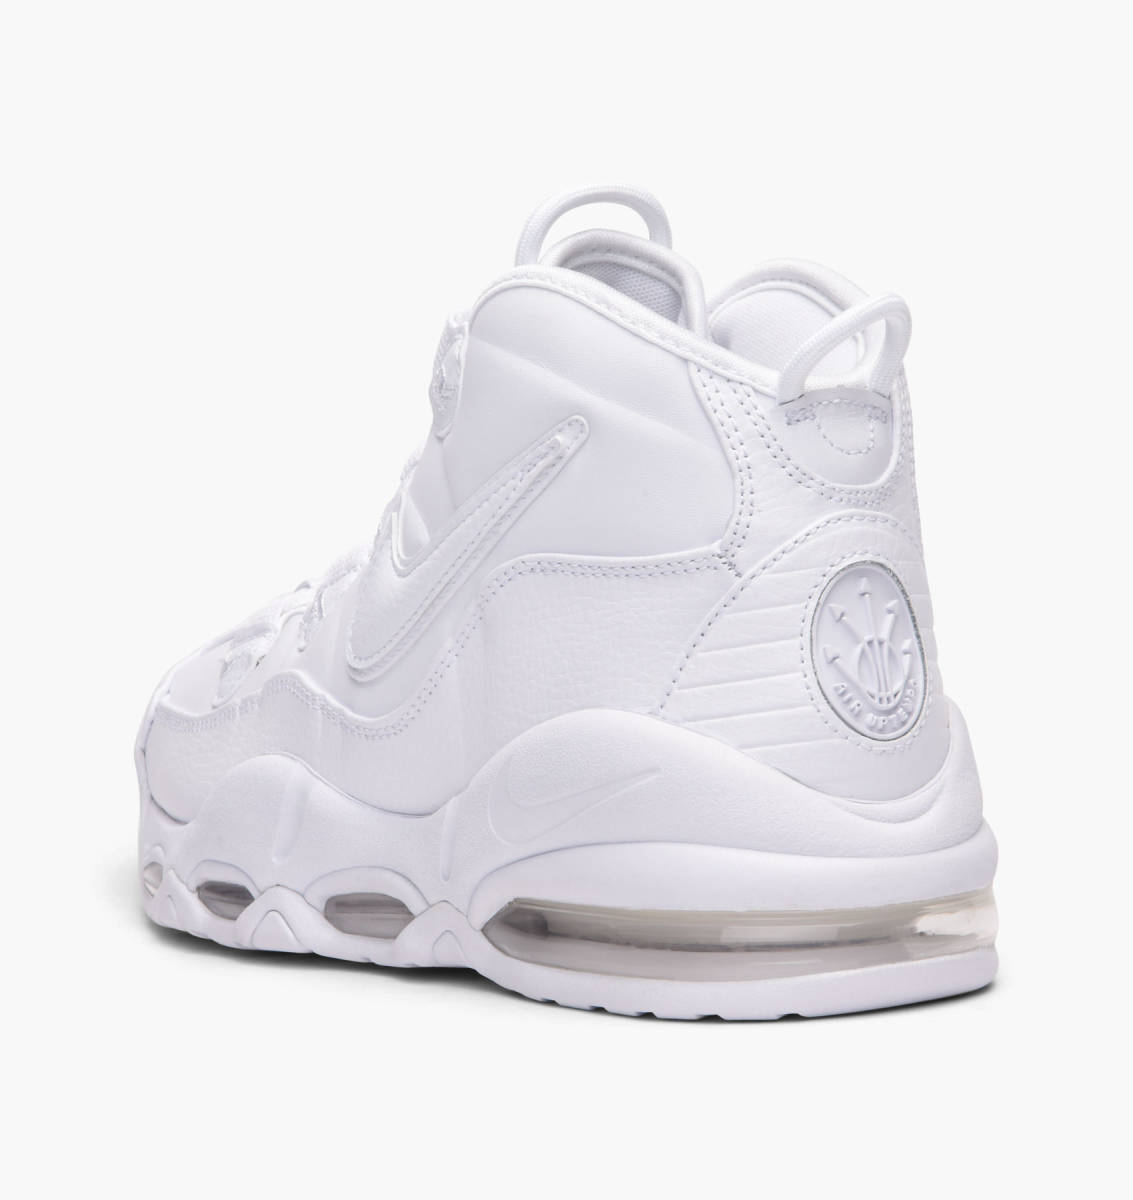 new product cb788 0f147 Nike Air Max Uptempo 95 in weiss - 922935-100  everysize